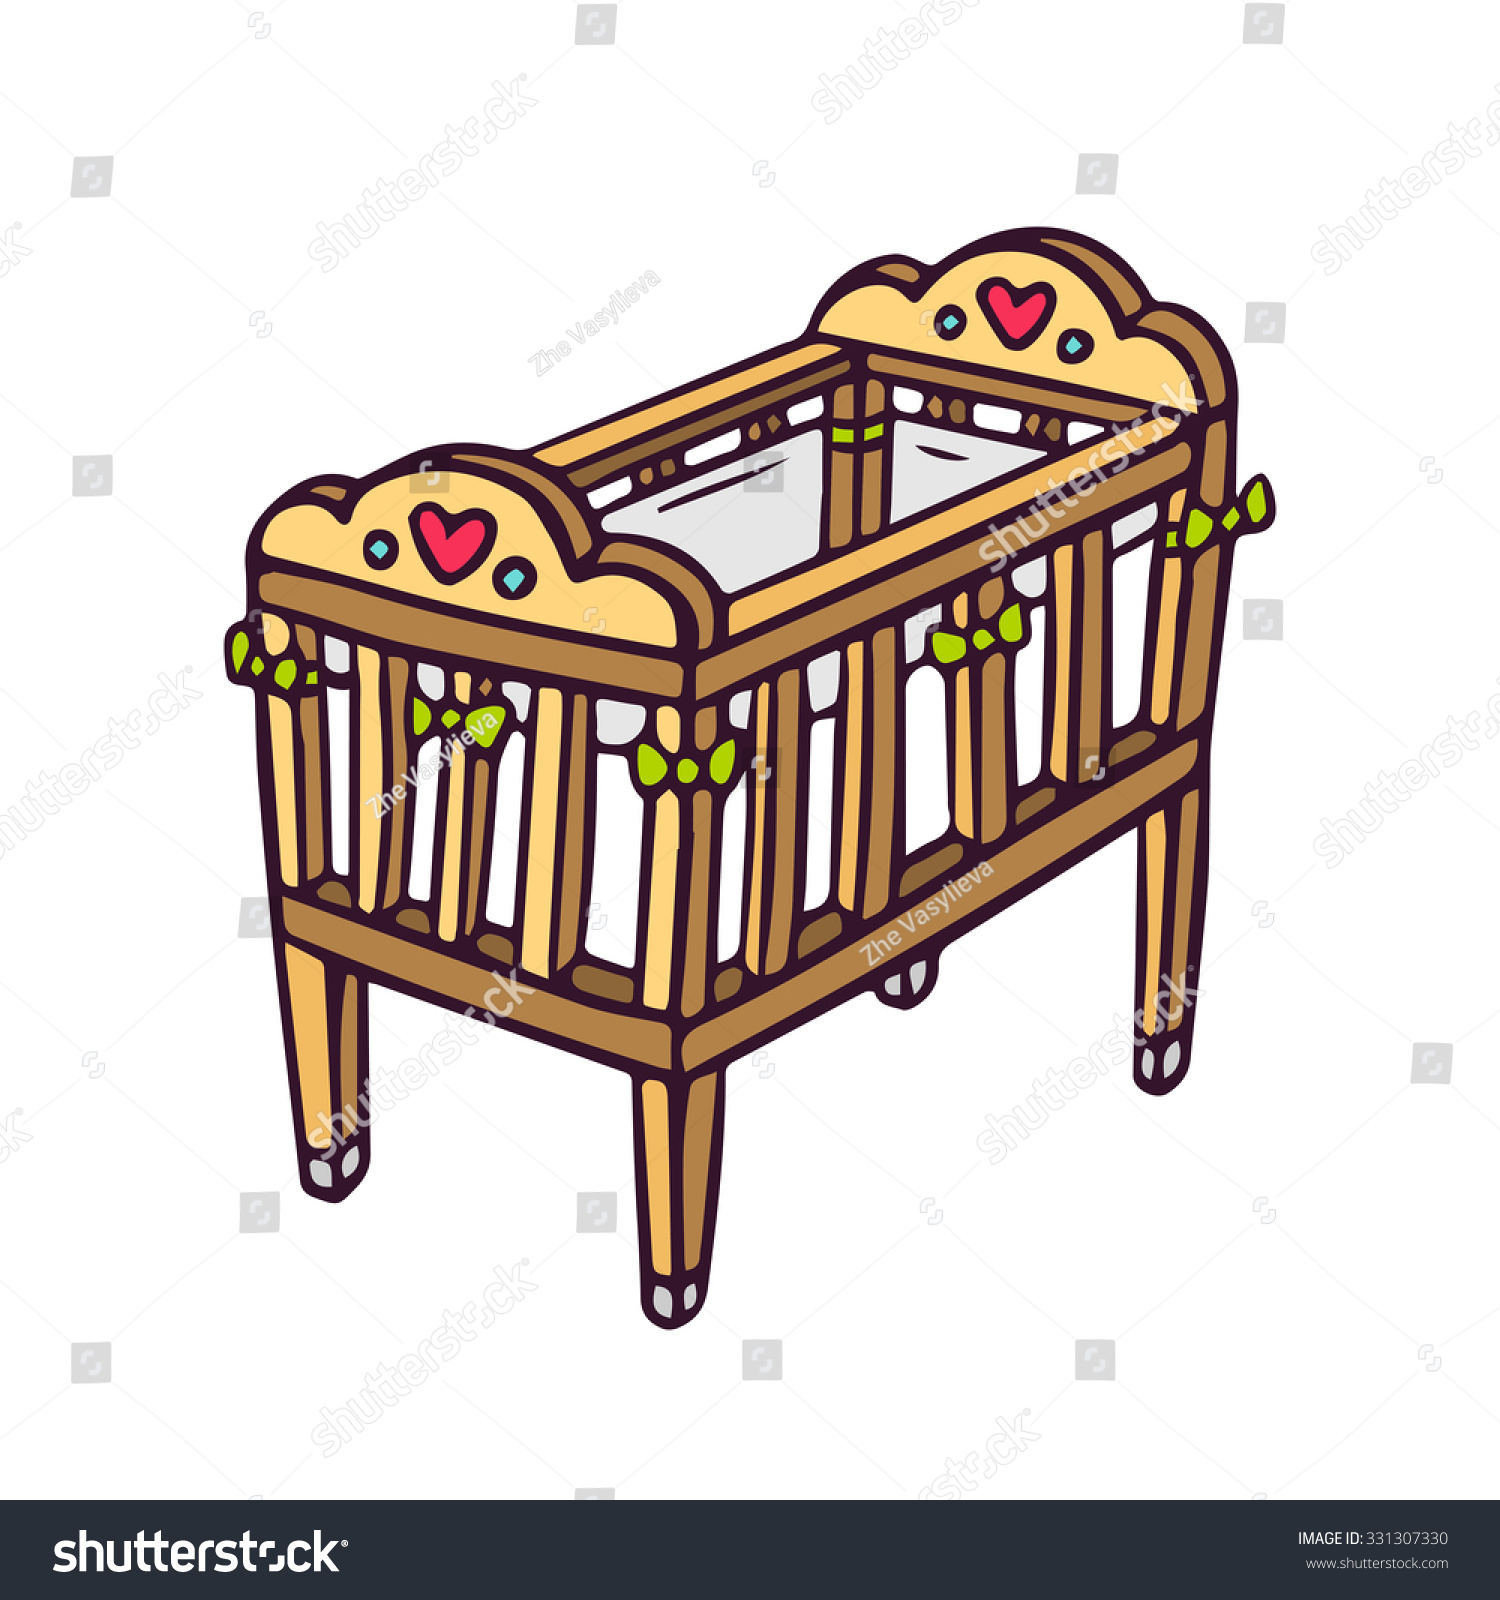 Adalat 60 oros.doc - Baby Bed Vector Free Baby Crib Bright Vector Children Illustration Of Newborn S Cot Isolated